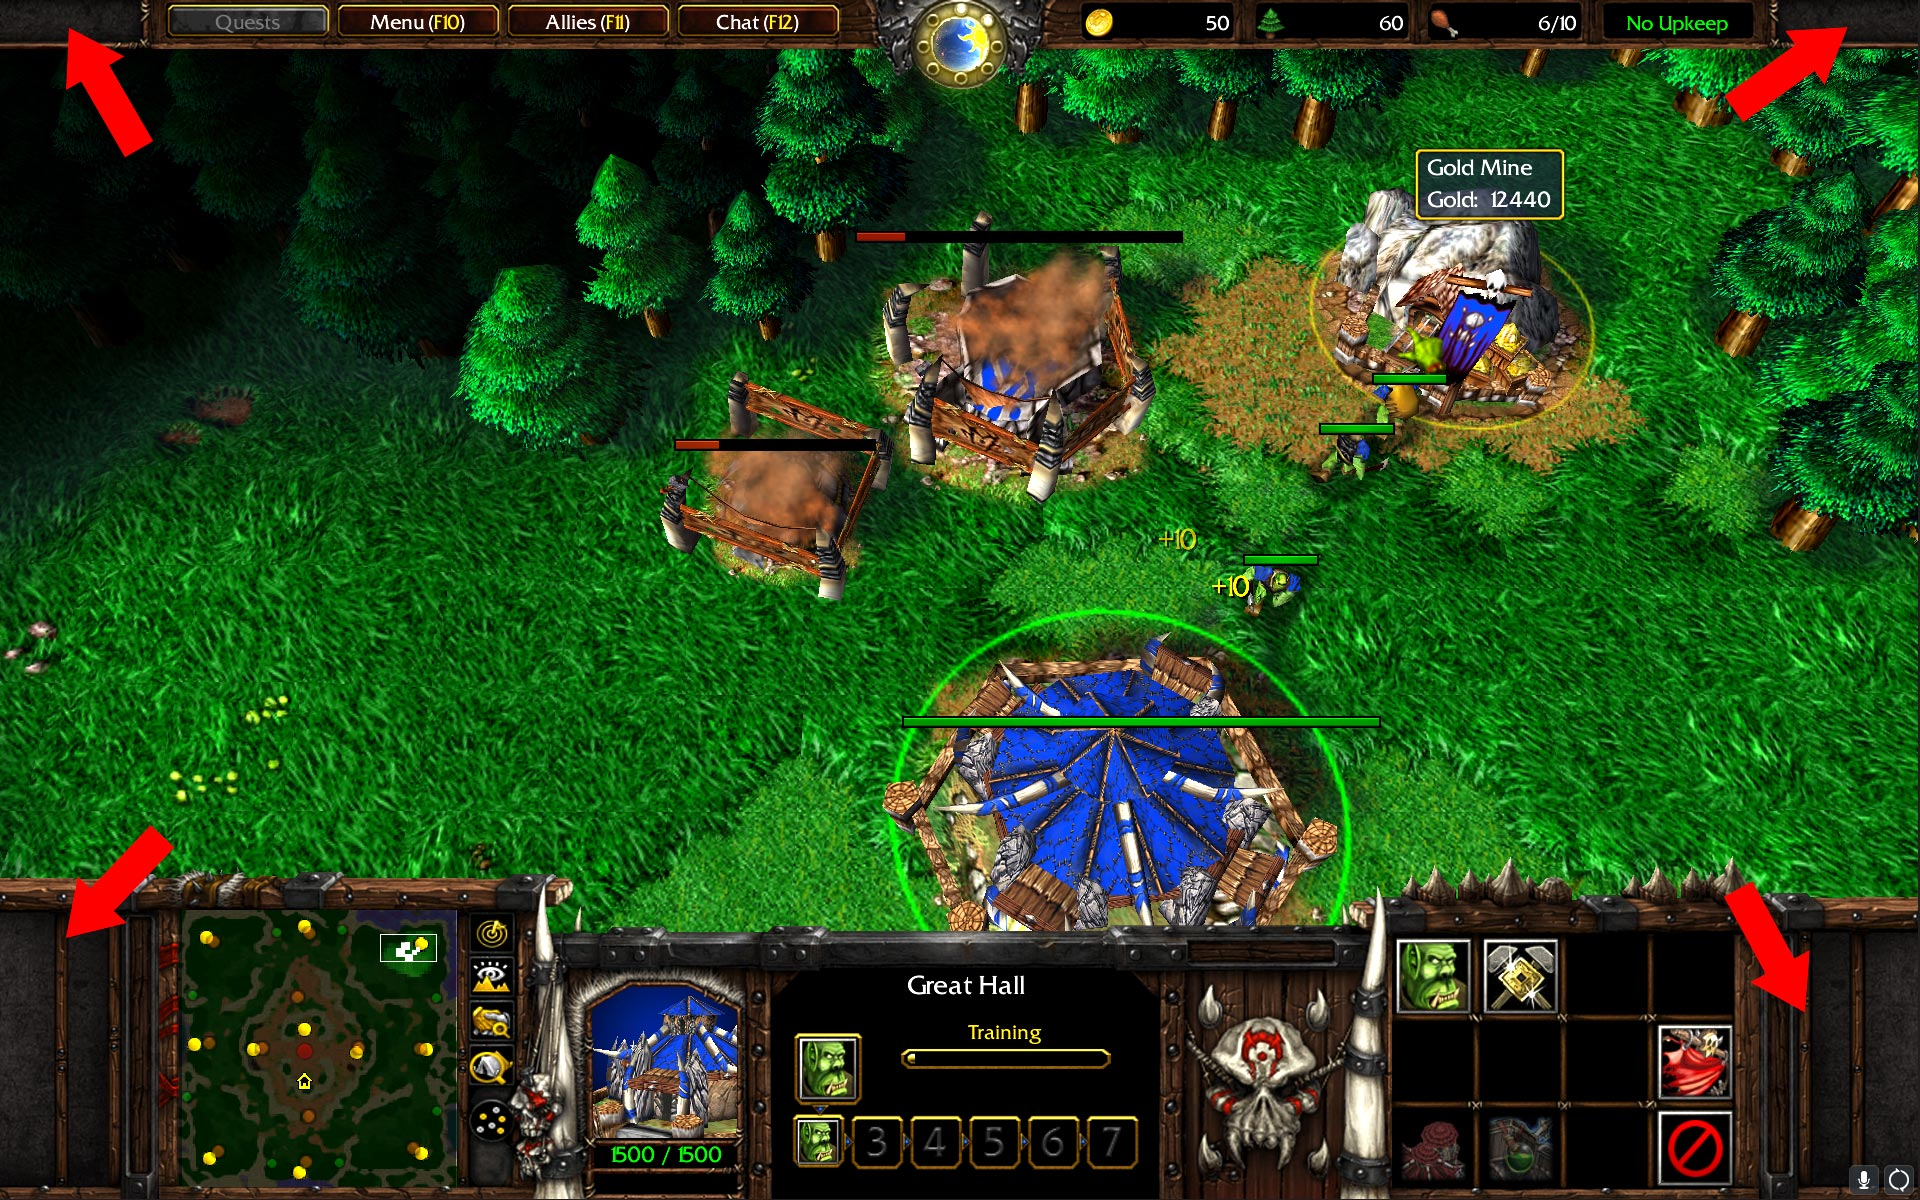 Warcraft 3 Patch 1.29 Ingame Screen Resolution